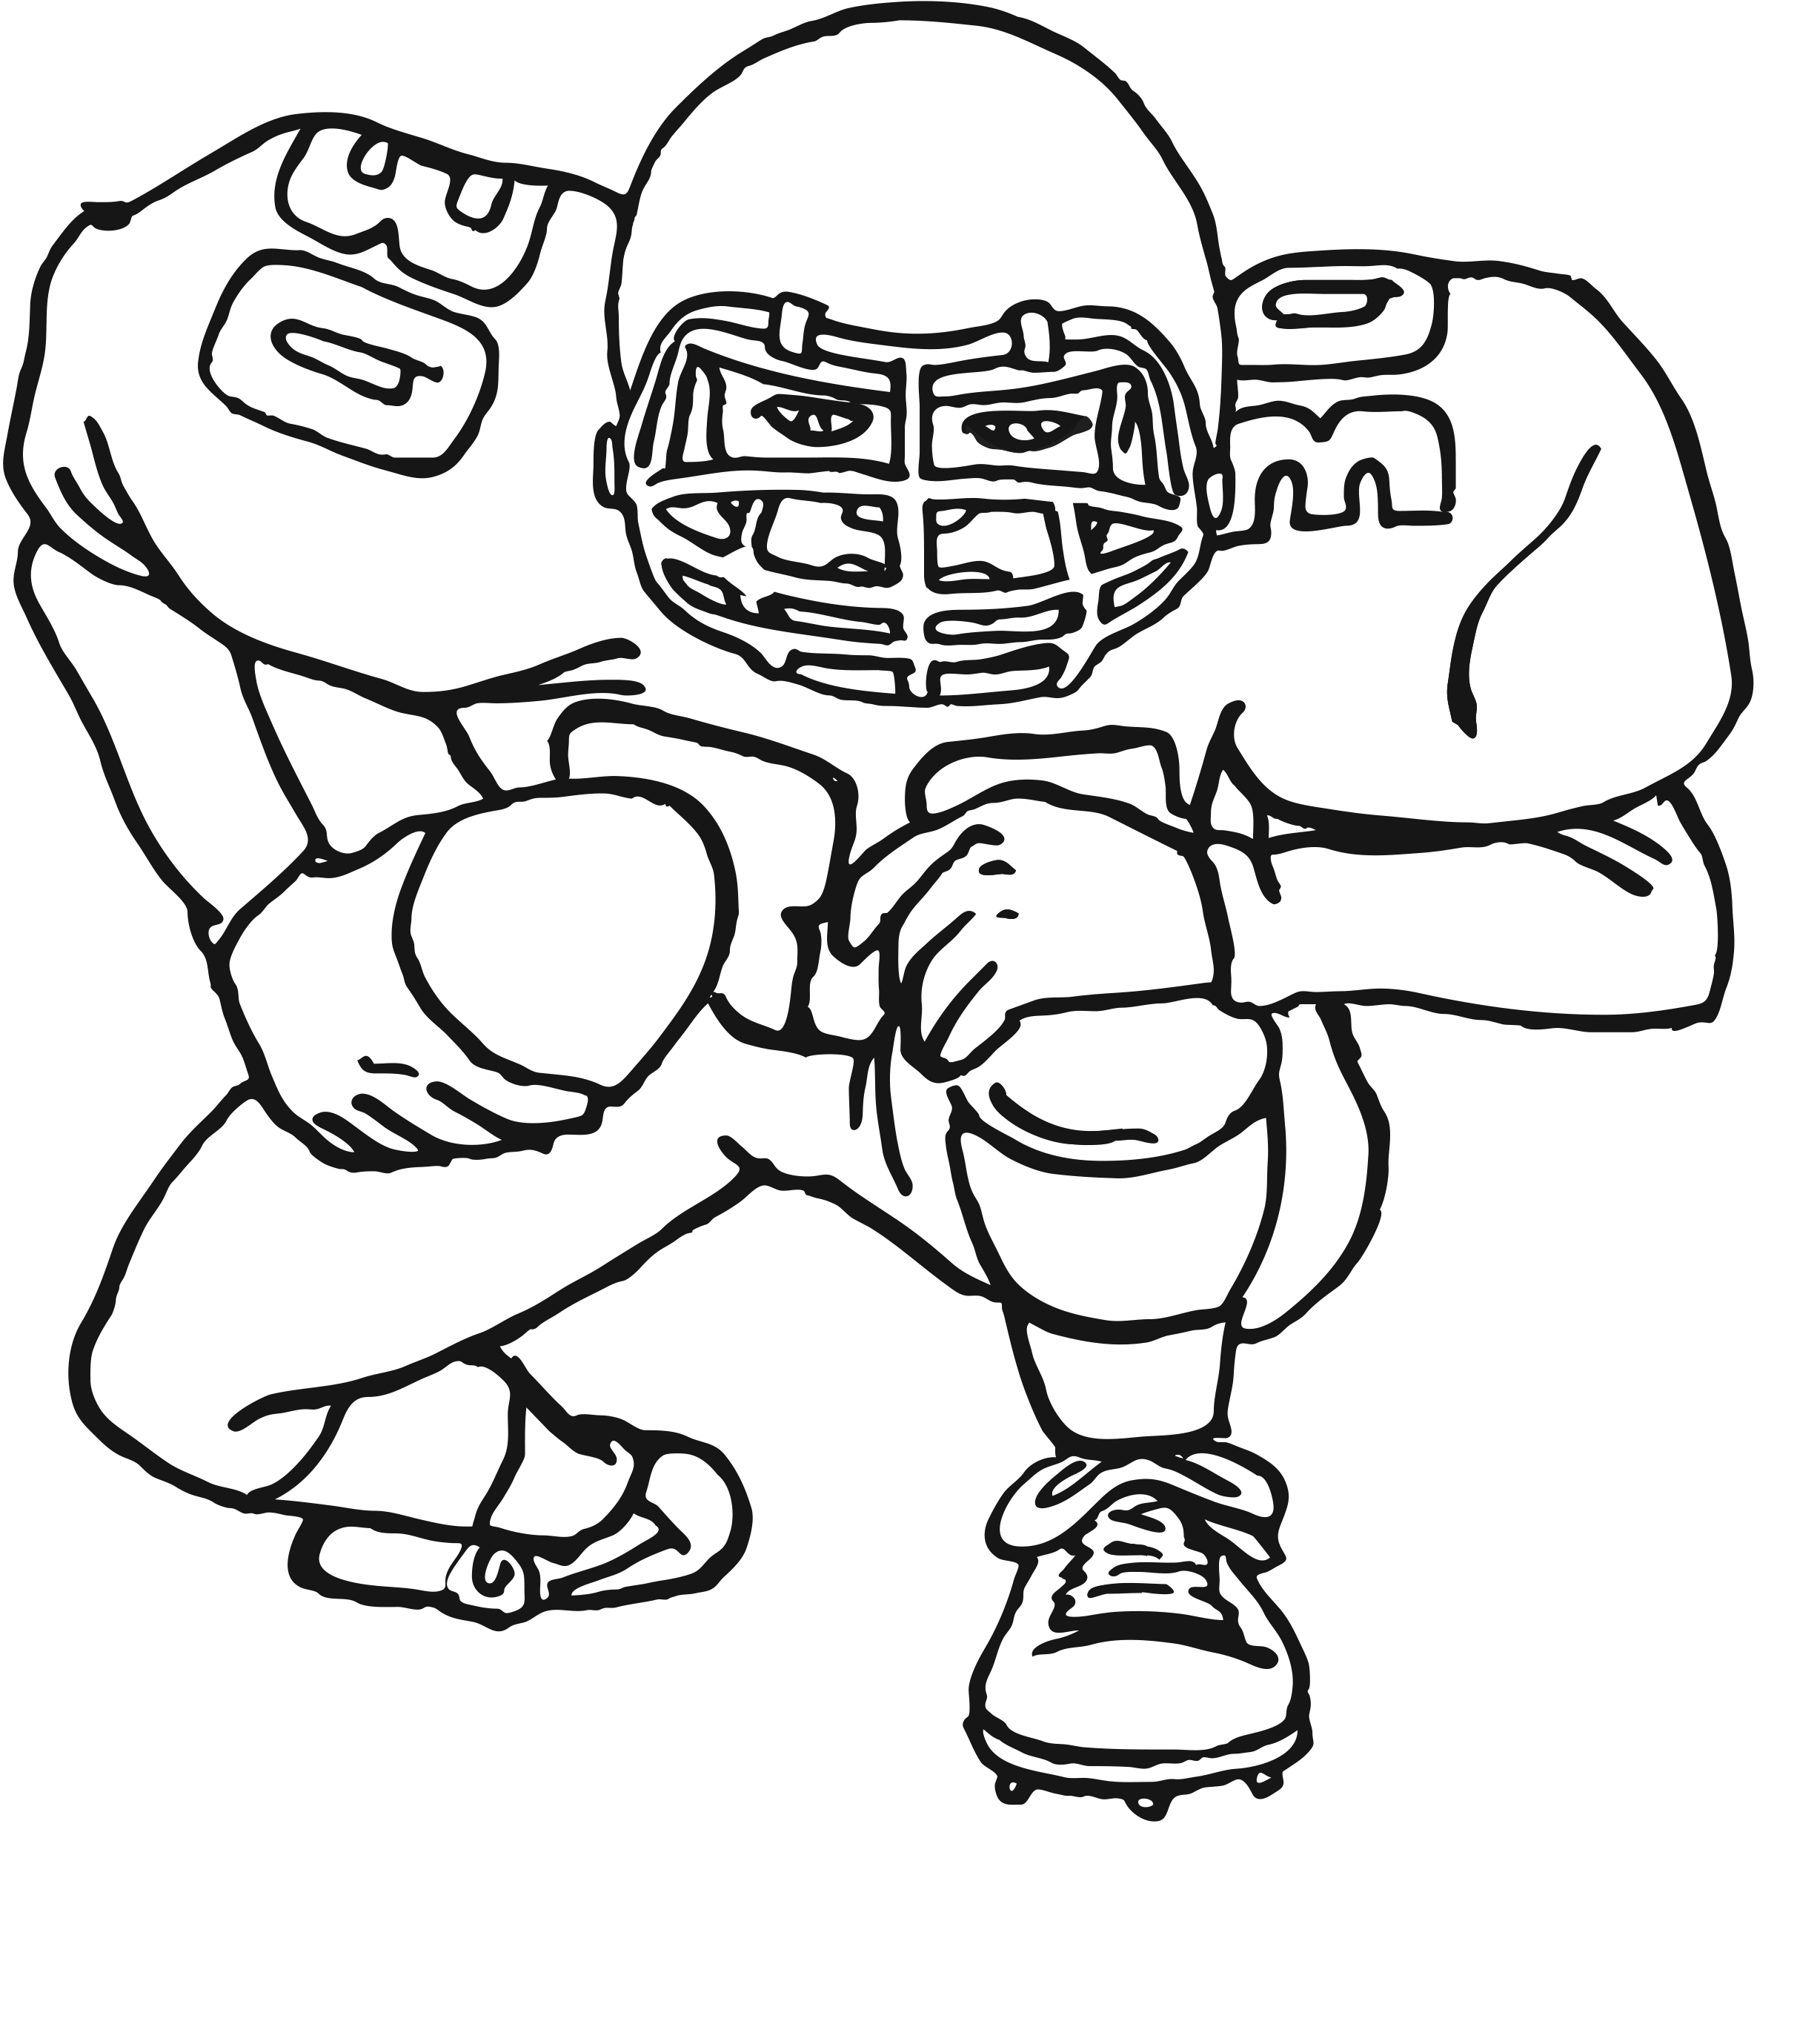 printable football pictures printable footballs pictures free download on clipartmag printable pictures football